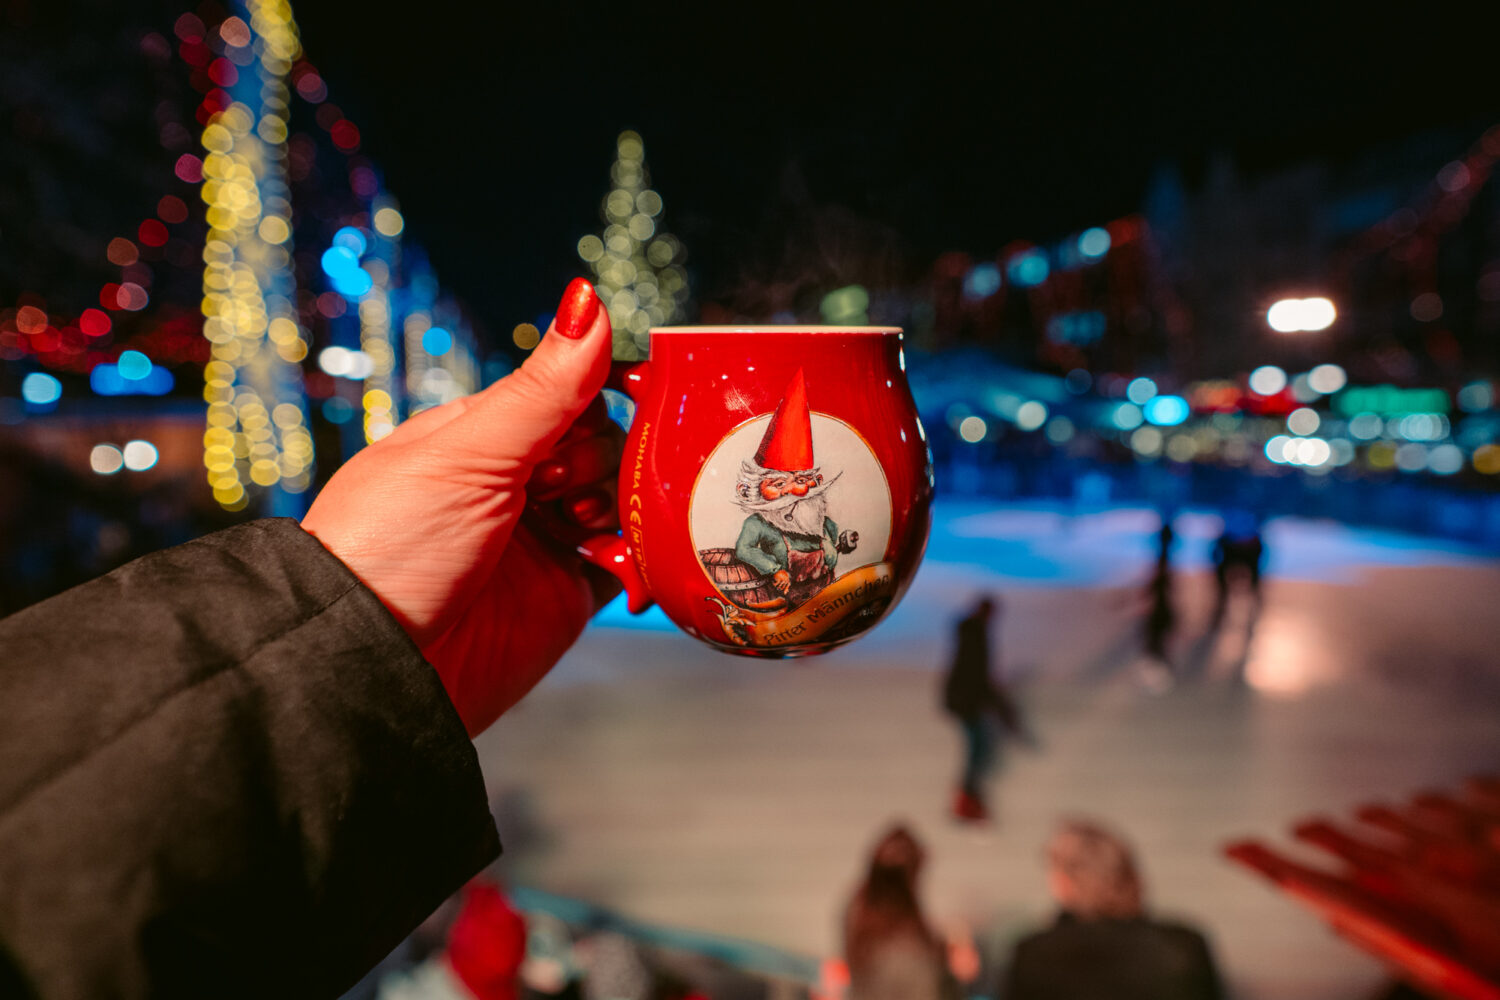 Cologne Christmas Market 2021 Cologne Christmas Market Guide 2021 Dates Where To Go What To Eat